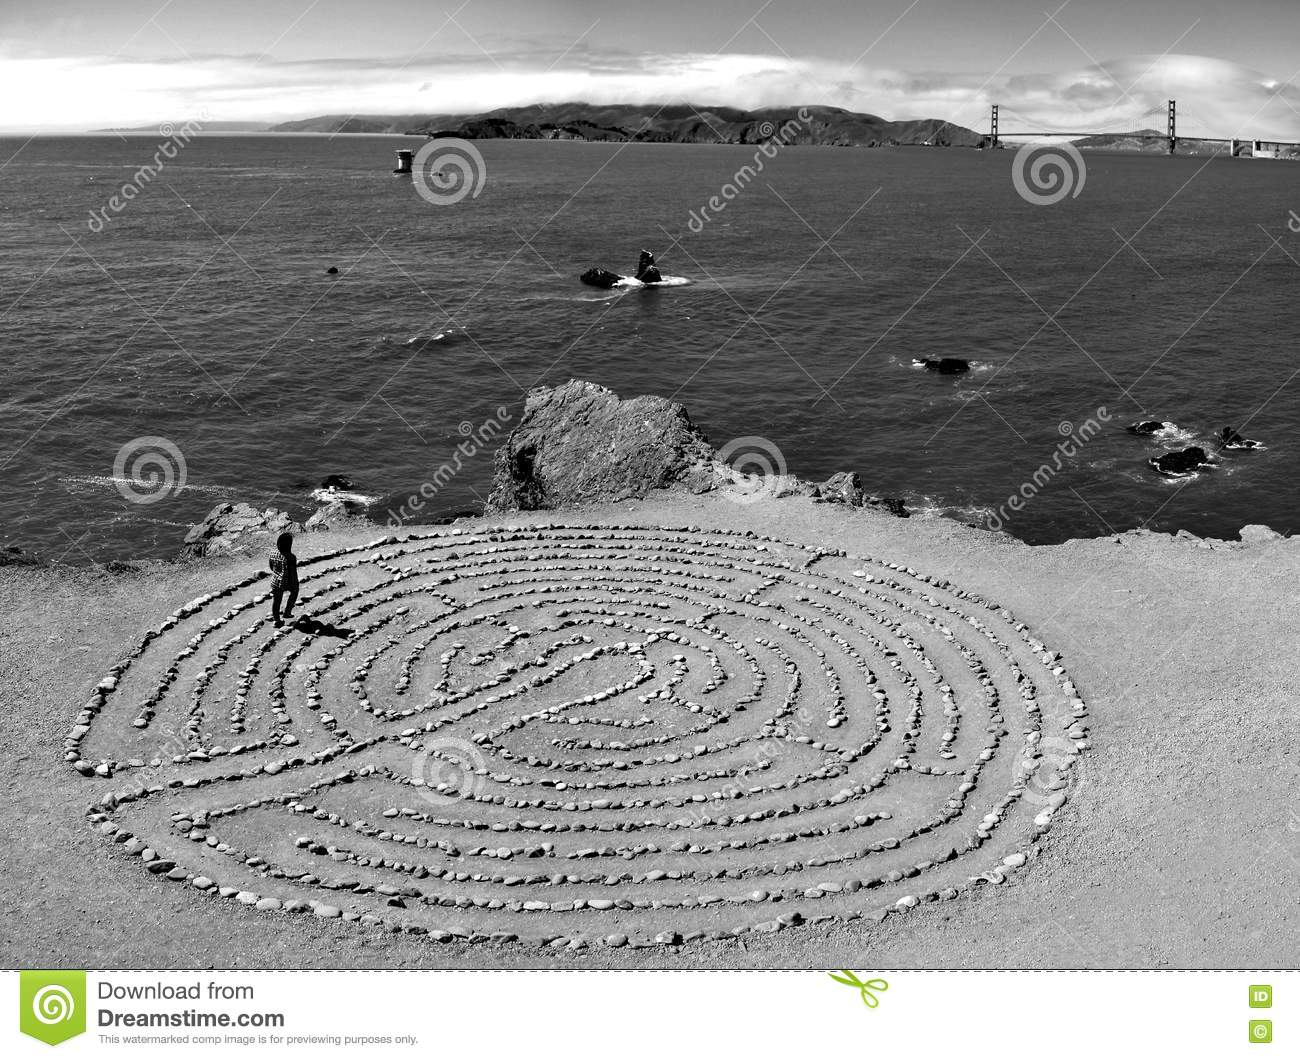 Mystical Labyrinth at lands end in San Francisco with view at the famous golden gate bridge, California, USA